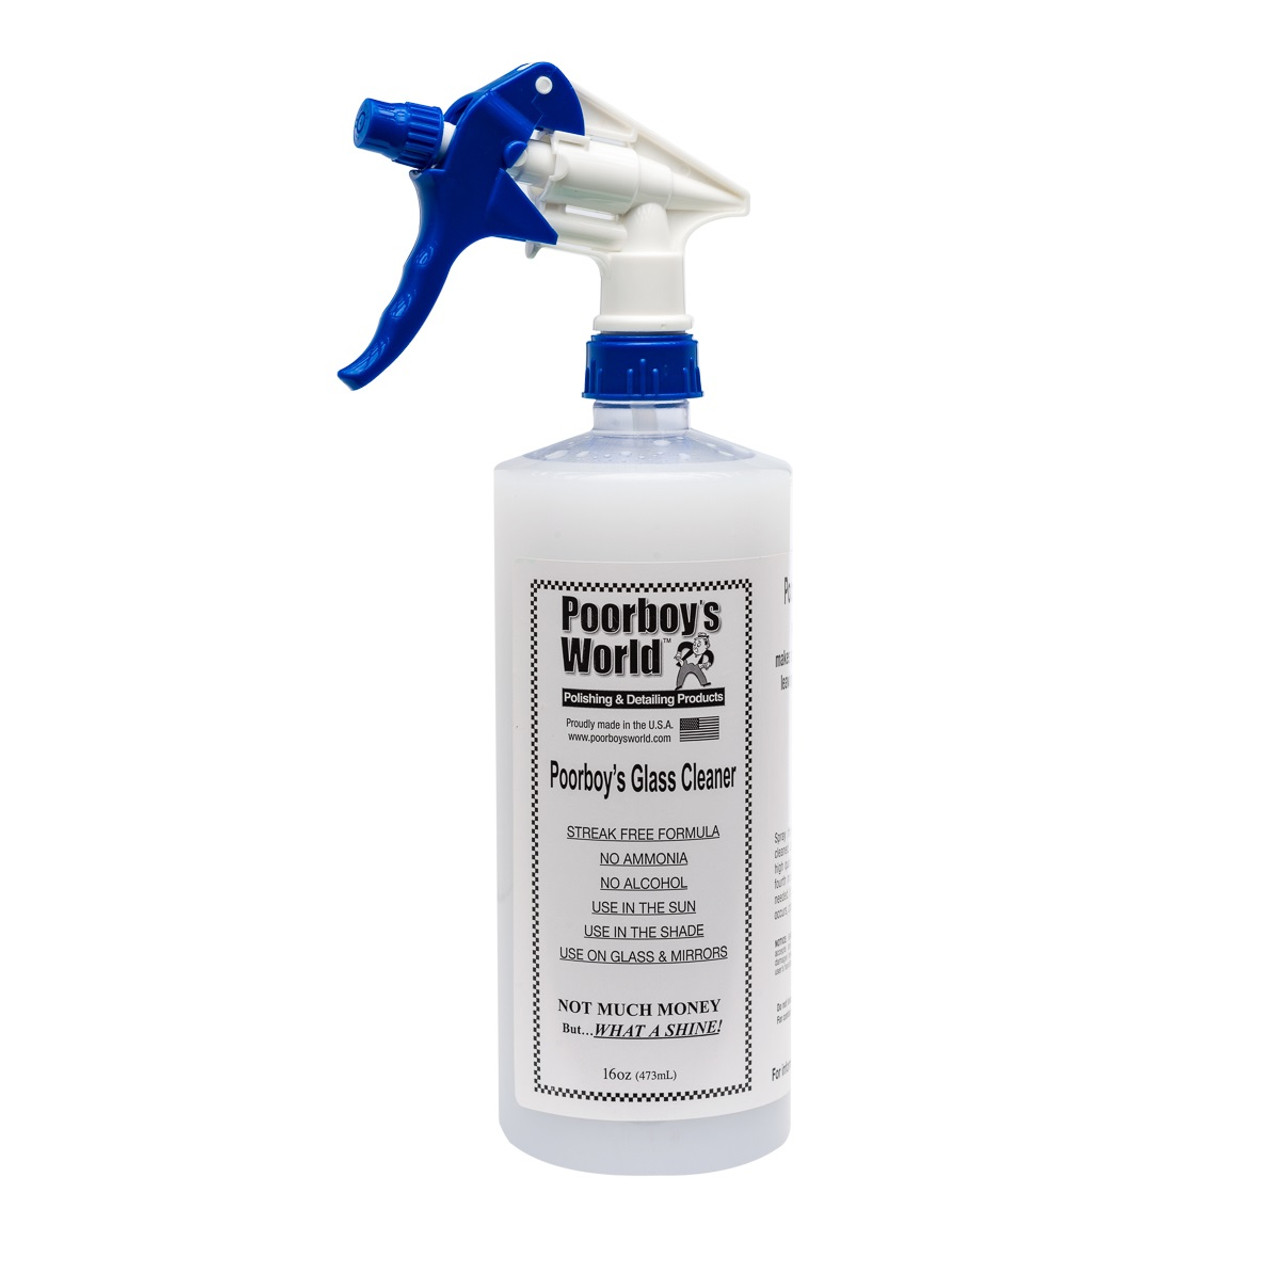 Poorboy's World Glass Cleaner 32oz w/Sprayer